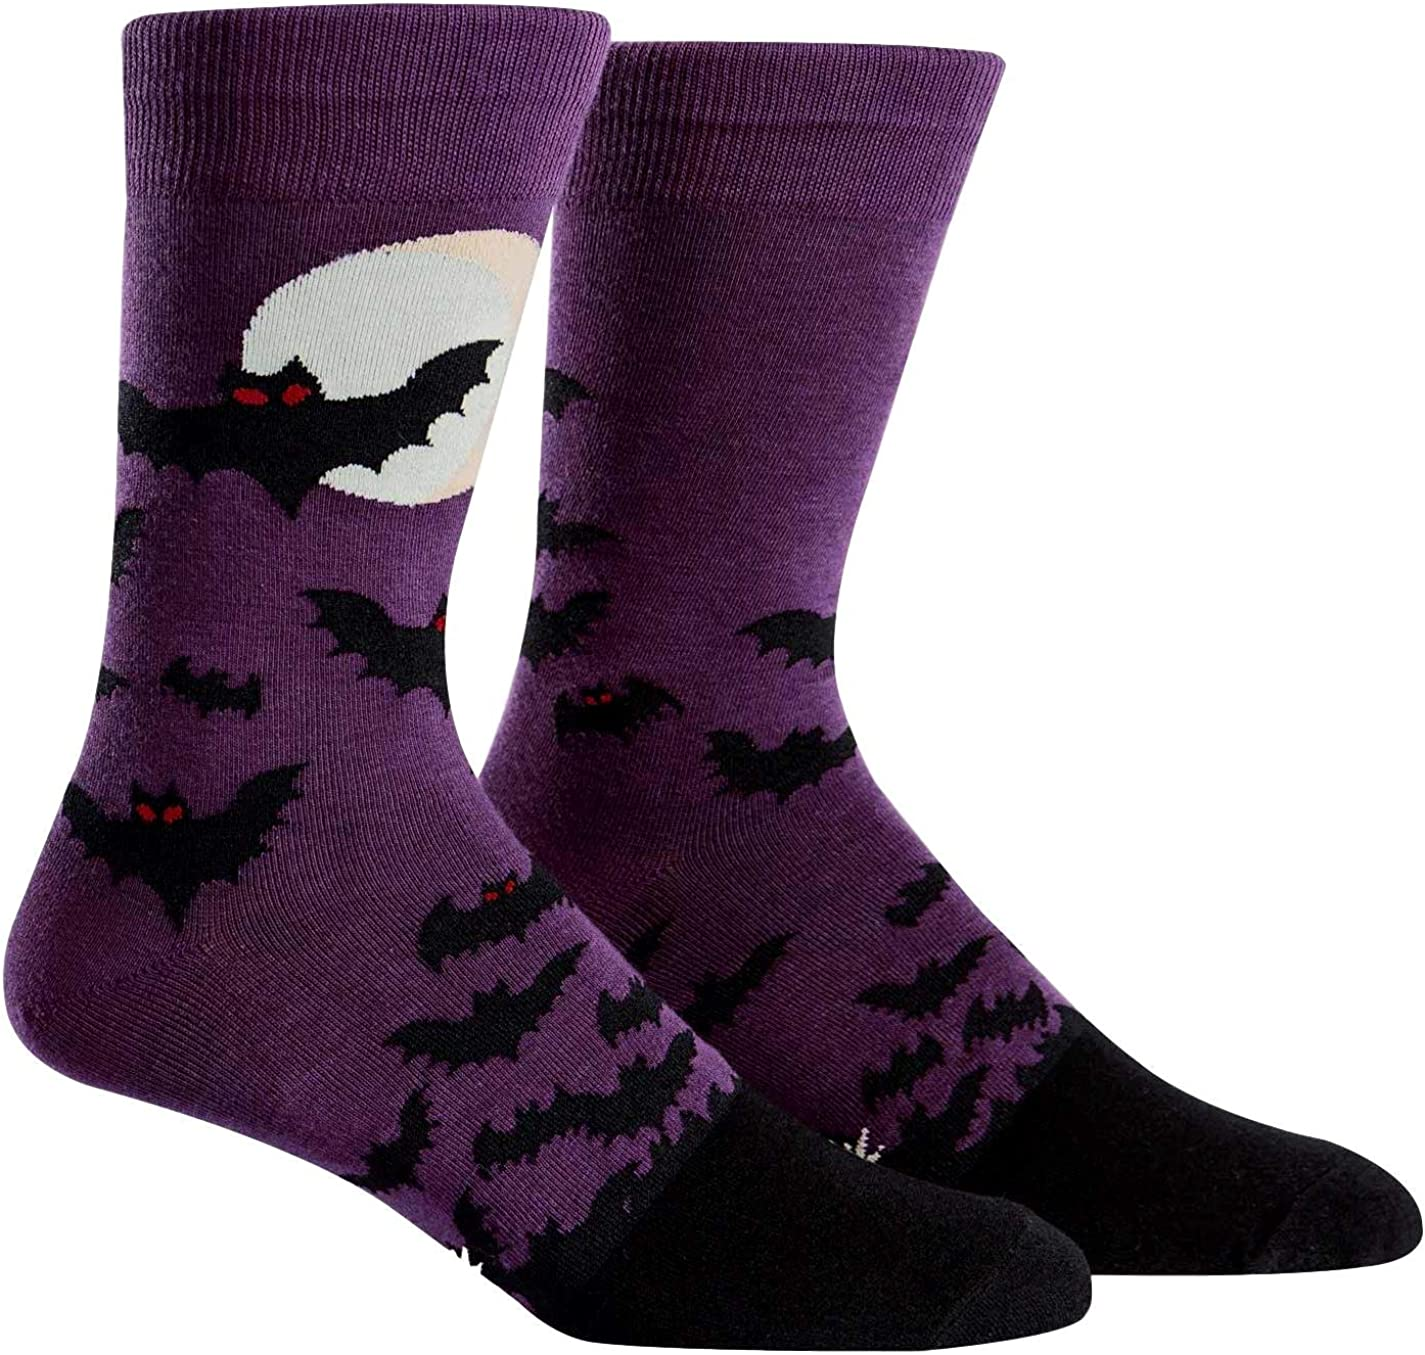 Sock It To Me Halloween Crew Socks Animer and price revision Men's Houston Mall